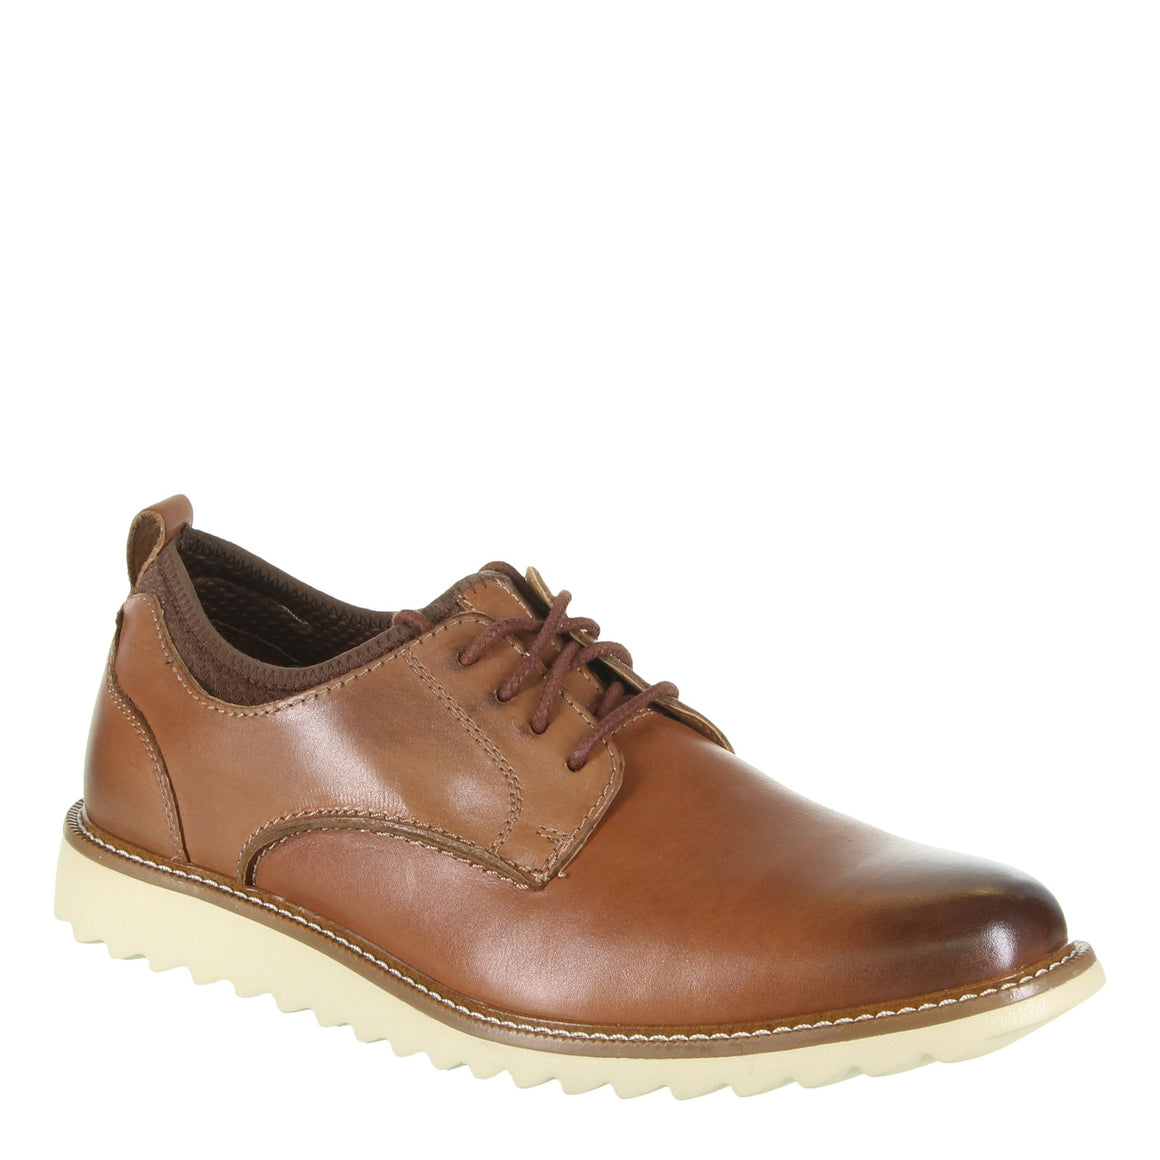 Dockers Men's Elon Oxford Shoe - Tan 90-40723 - ShoeShackOnline